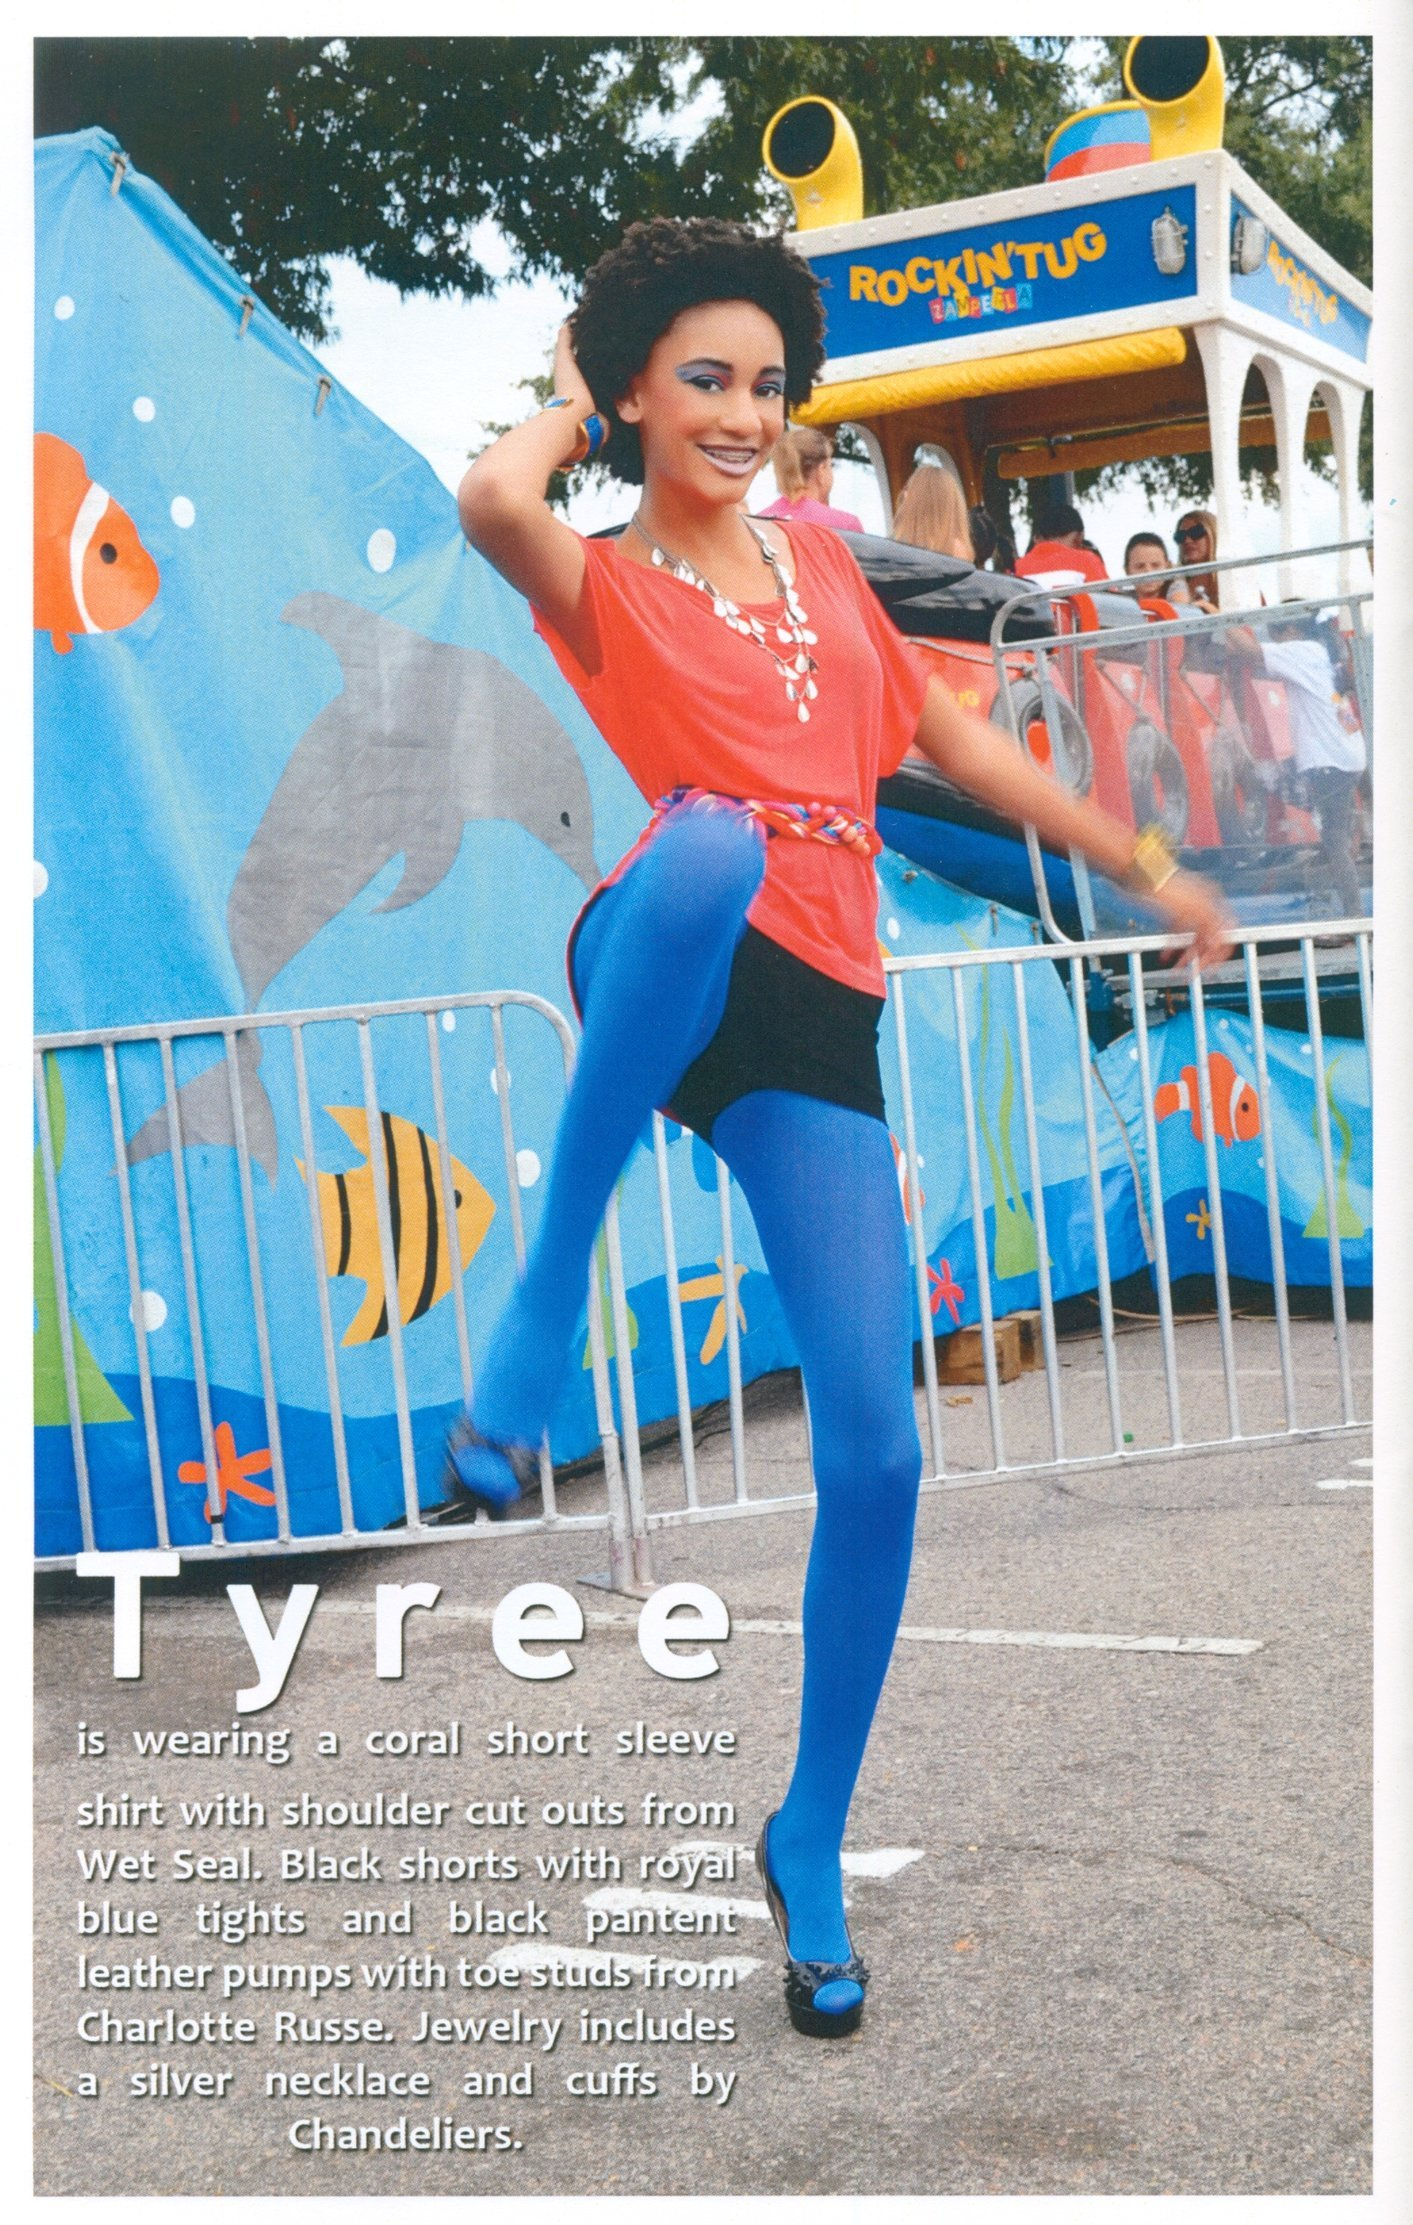 TYREE is featured in a 2 page spread in RED-ZONE magazine.